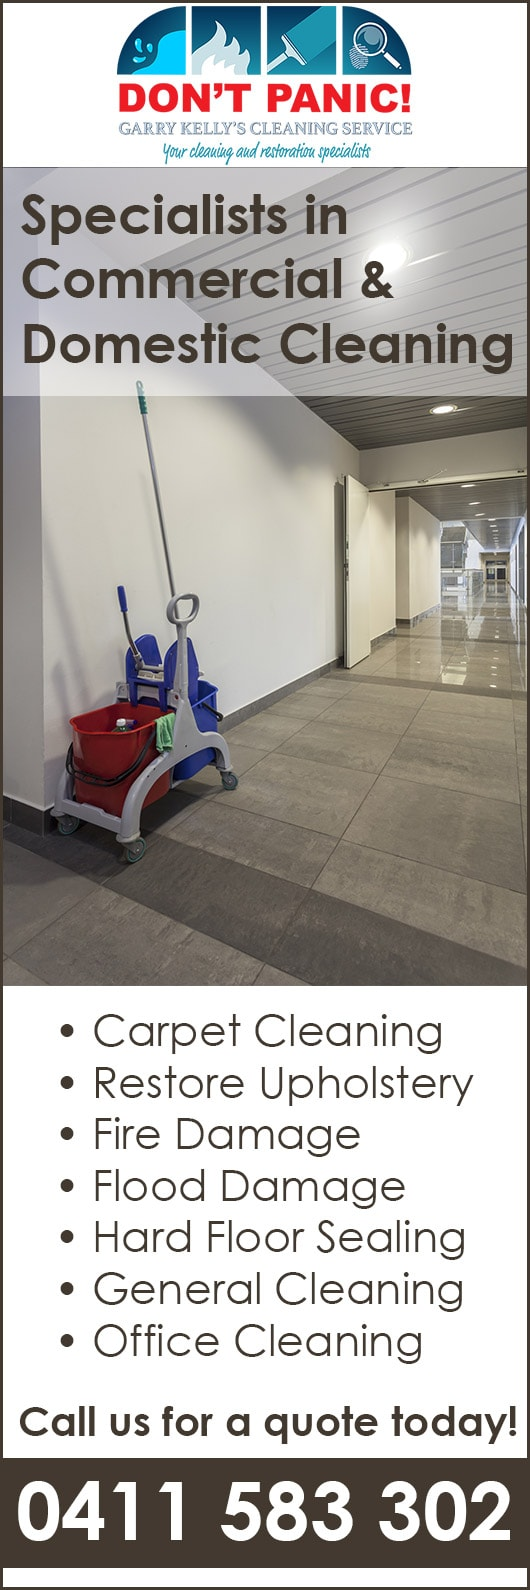 Garry Kelly's Cleaning Service - Commercial & Industrial